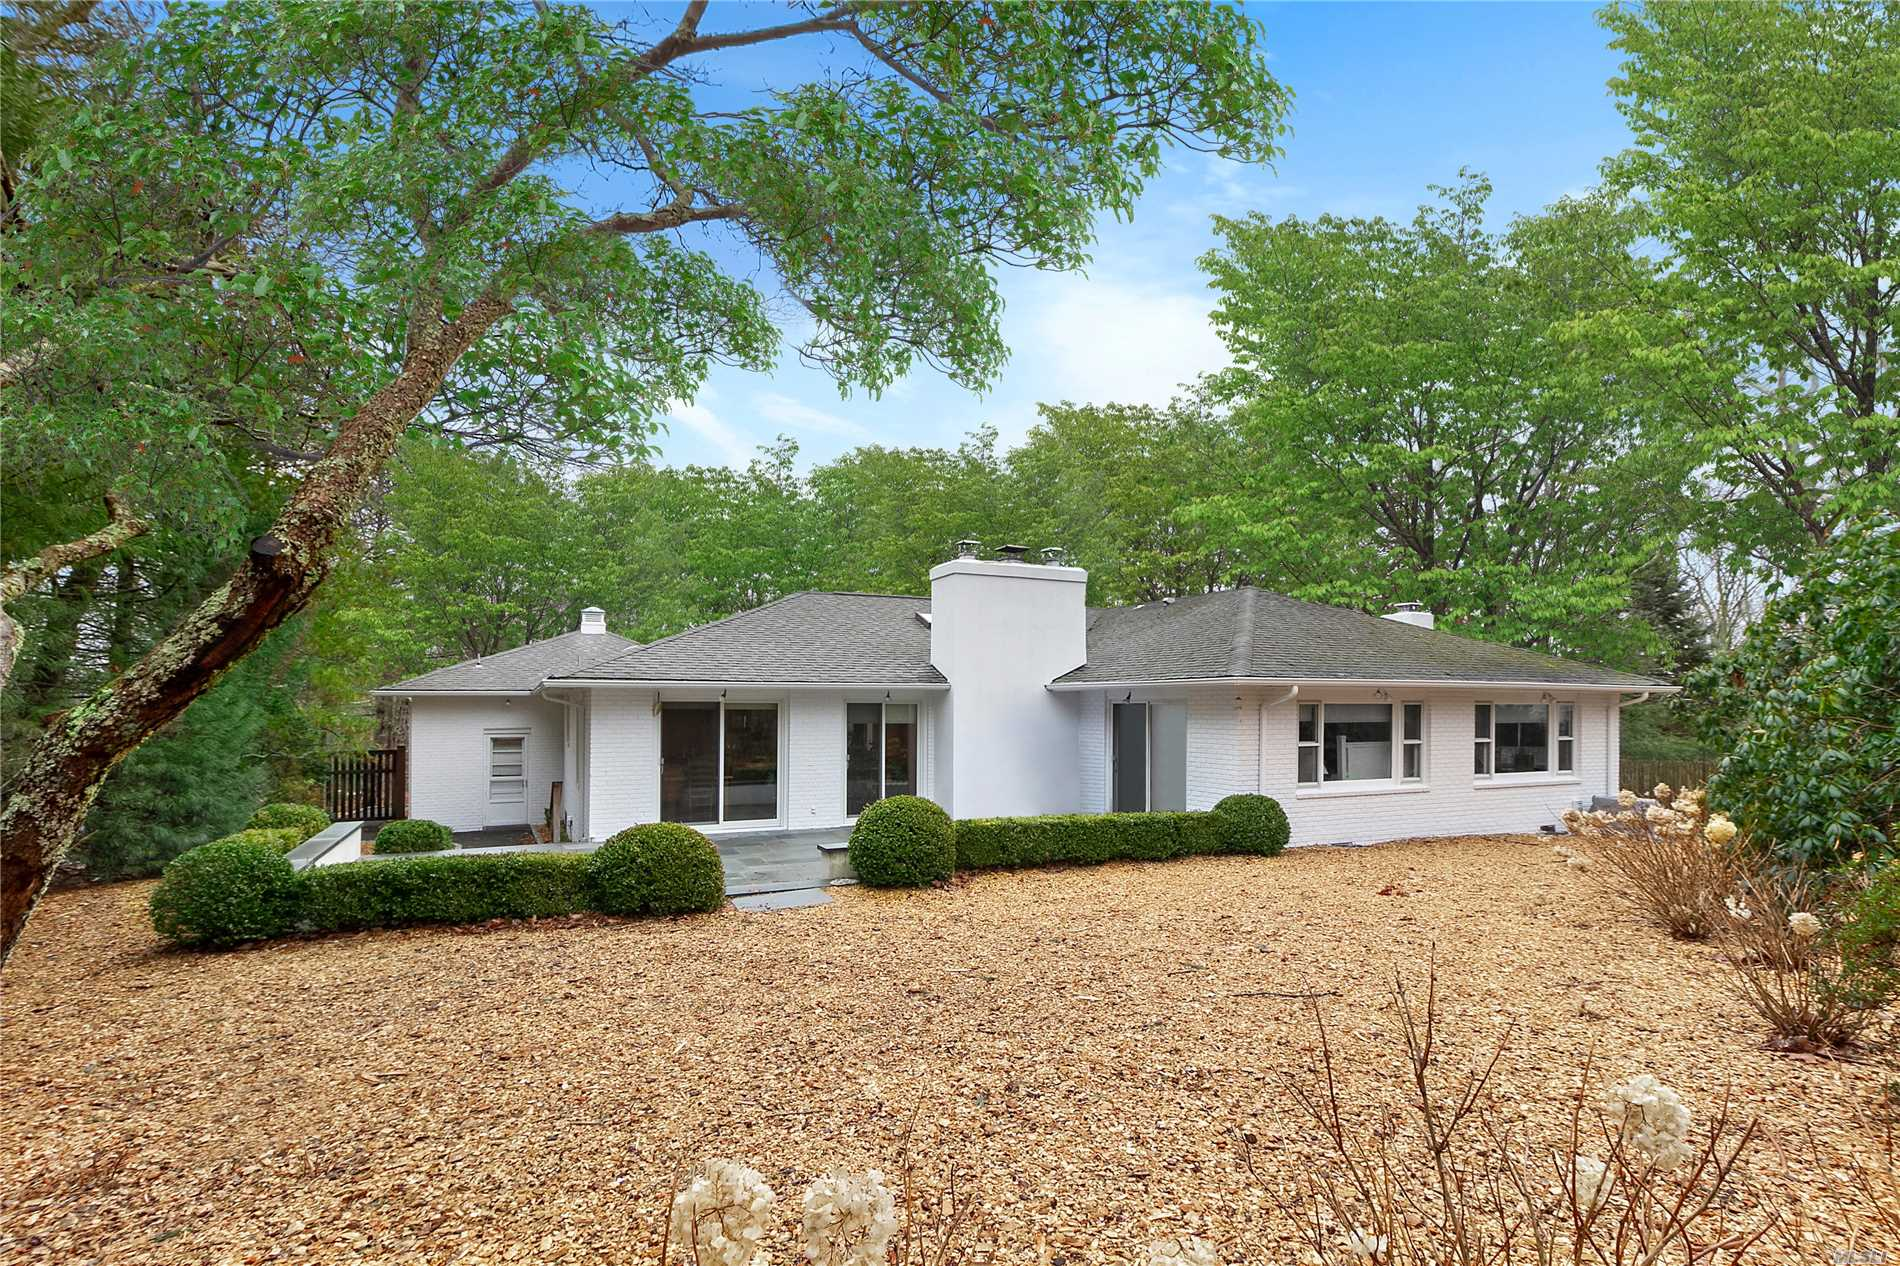 New to market, this charming 3 bedroom 3 bathroom home in private Hampton Waters community and close to East Hampton Village. This light and airy one level home has a two-car garage and a generously size backyard with room for pool.